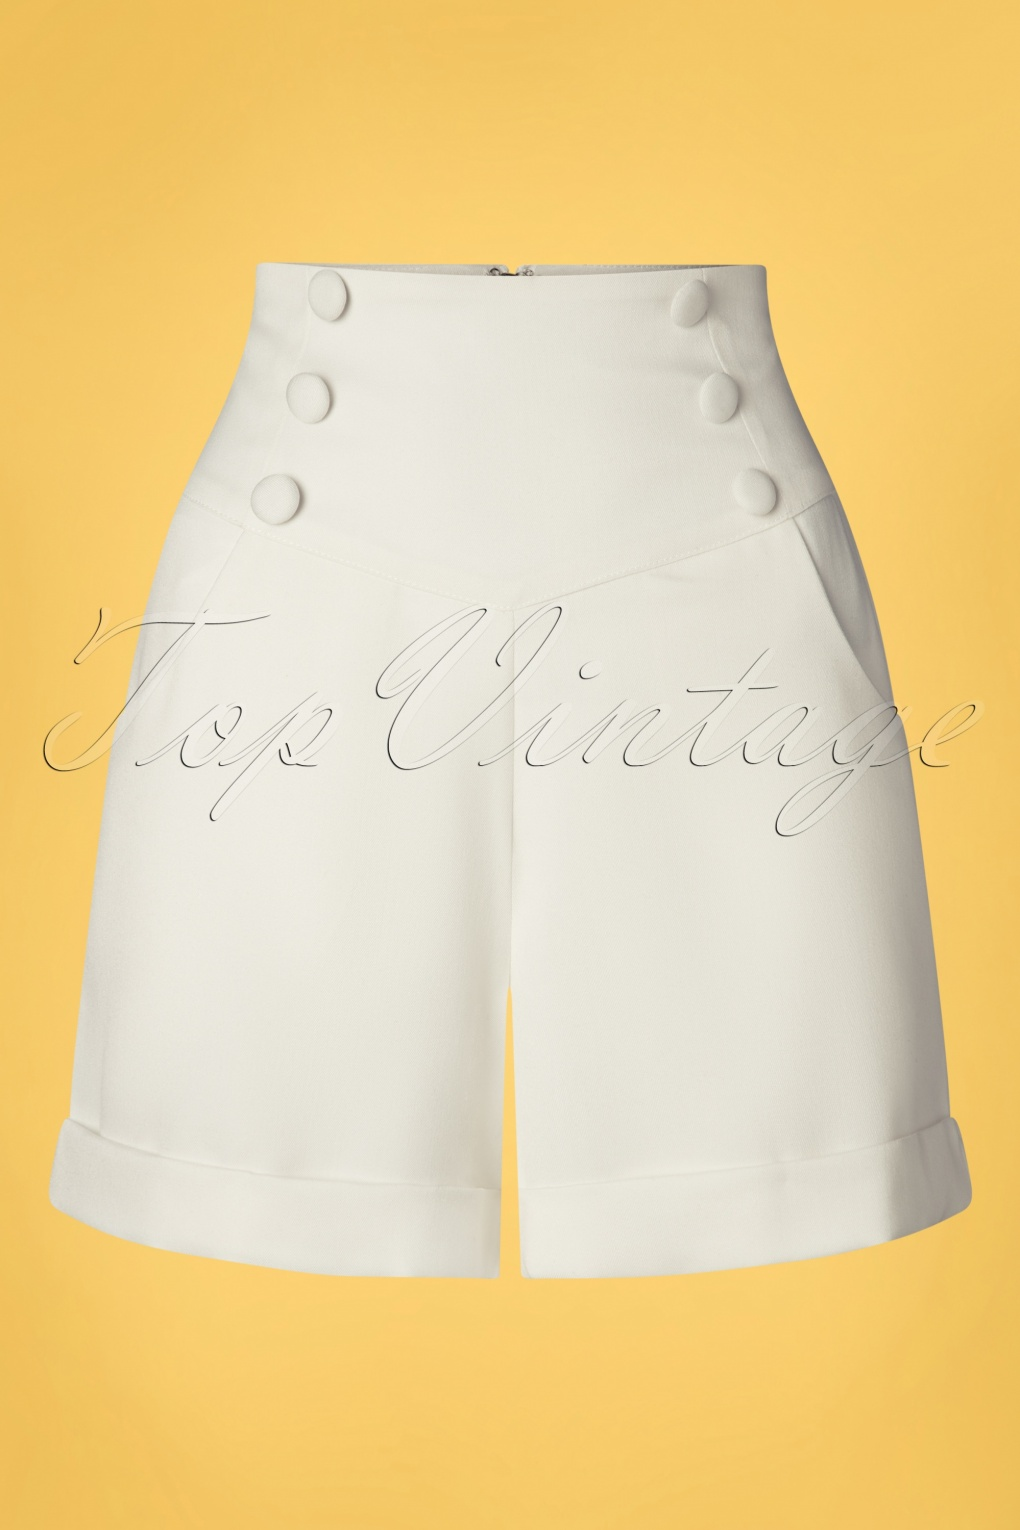 Vintage Shorts, Culottes,  Capris History 50s Cute As A Button Shorts in White £24.95 AT vintagedancer.com